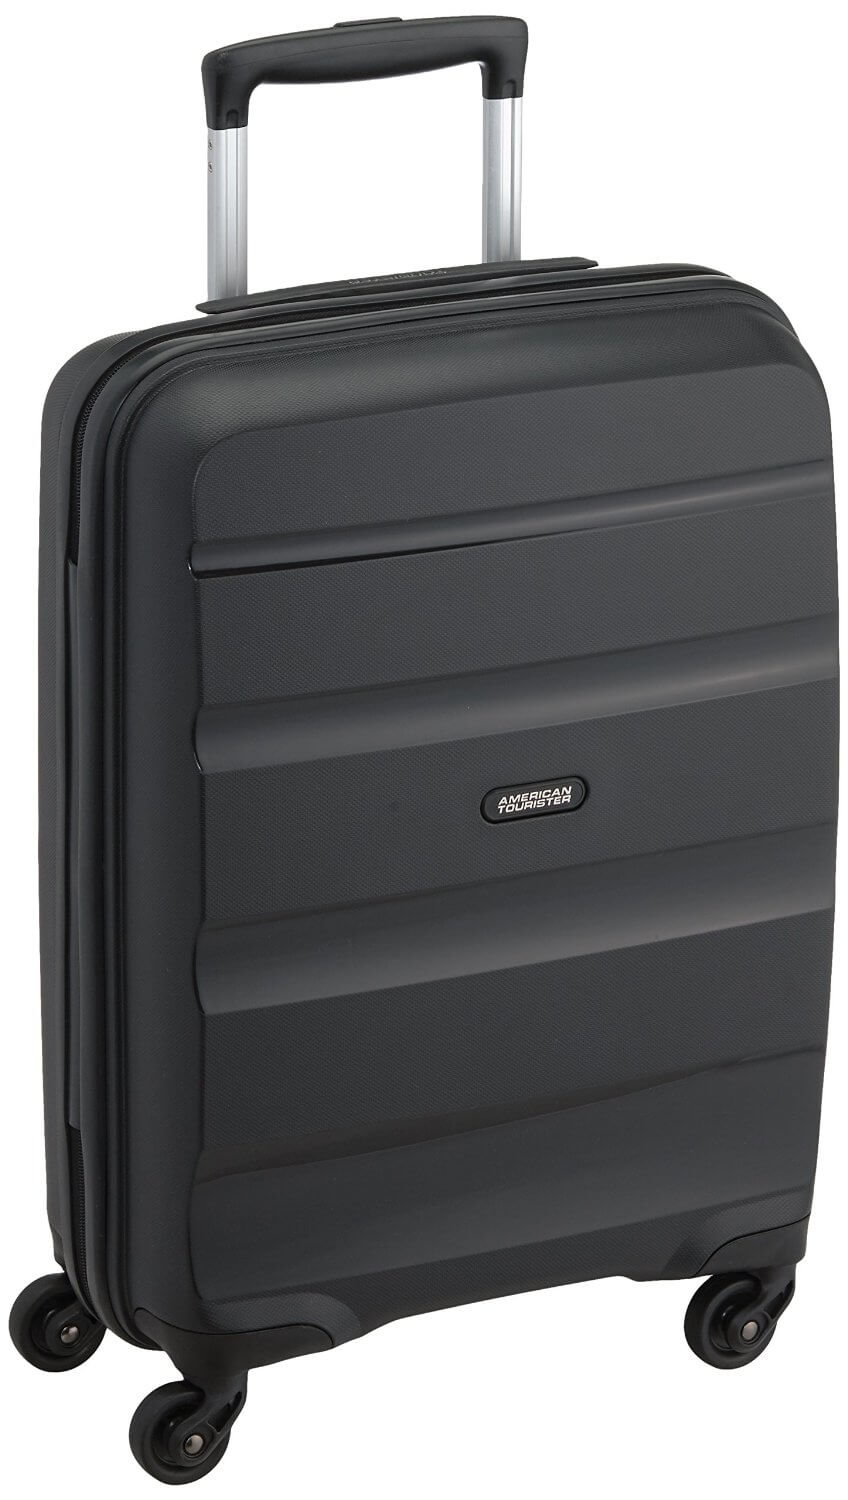 Best Lightweight Cabin Luggage Reviews 2016 - 2017